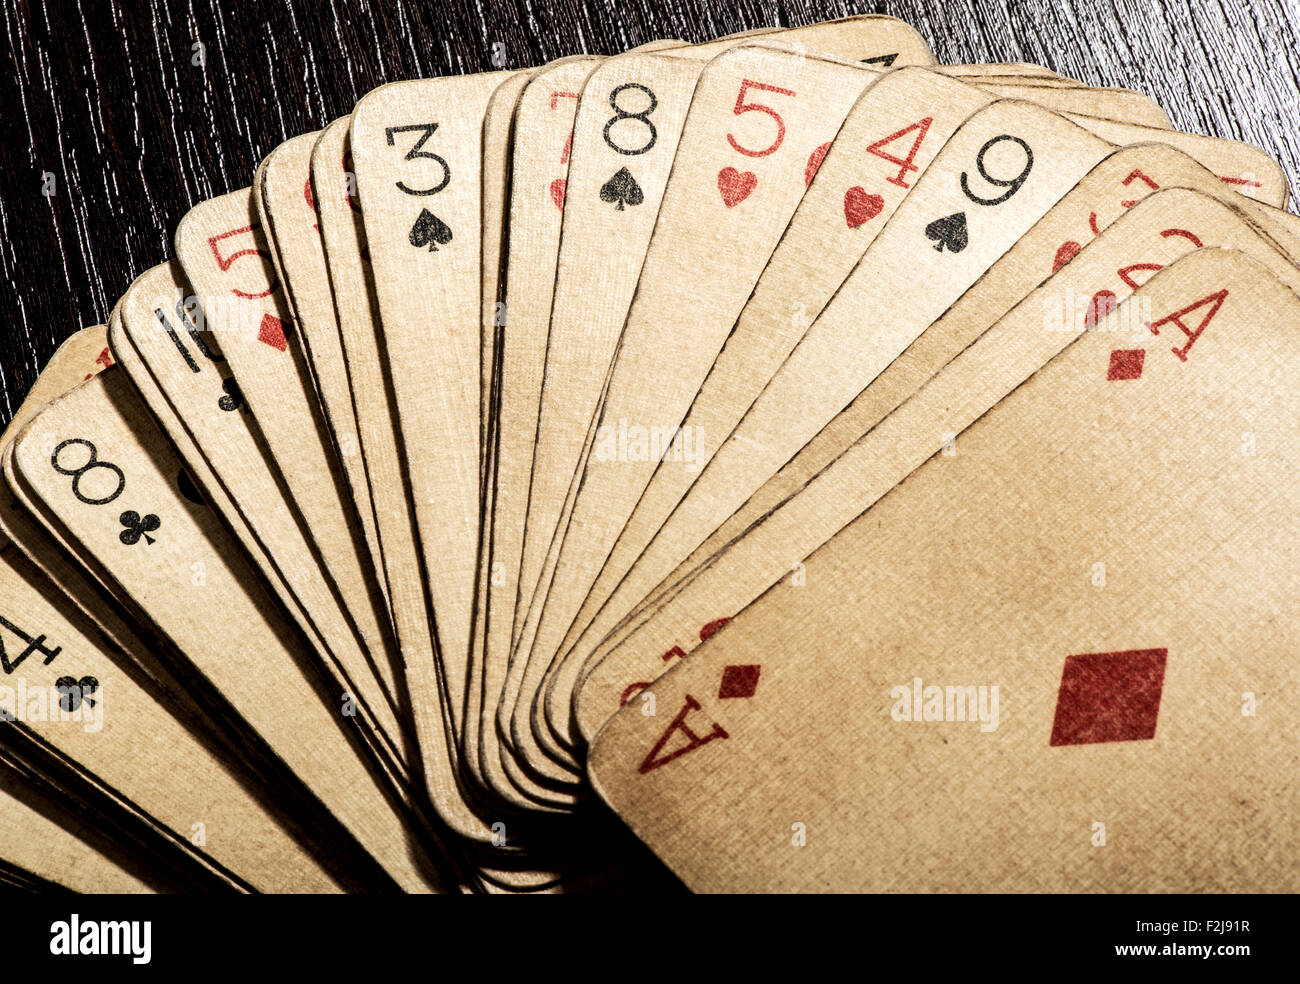 Grungy discolored dirty vintage playing cards - Stock Image